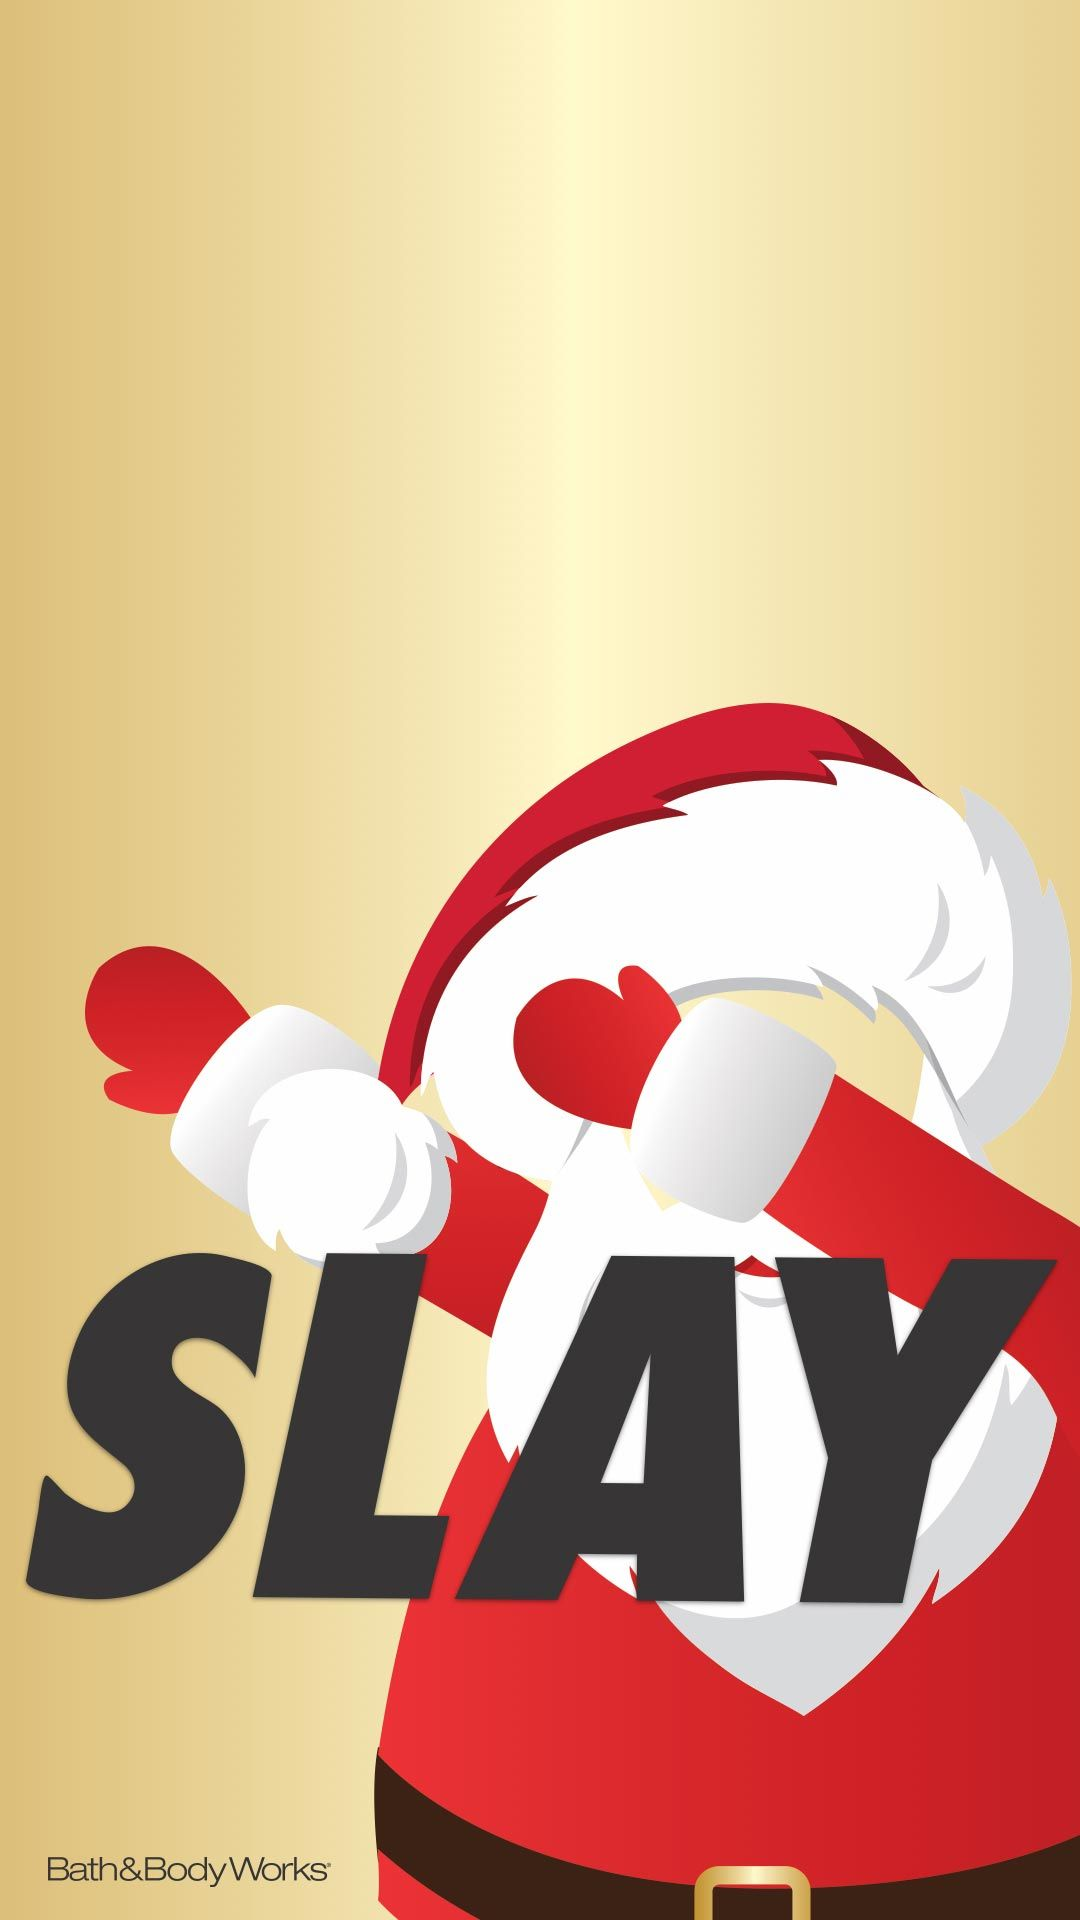 Santa Slay Wallpaper | Bath & Body Works Wallpapers! in 2018 ...